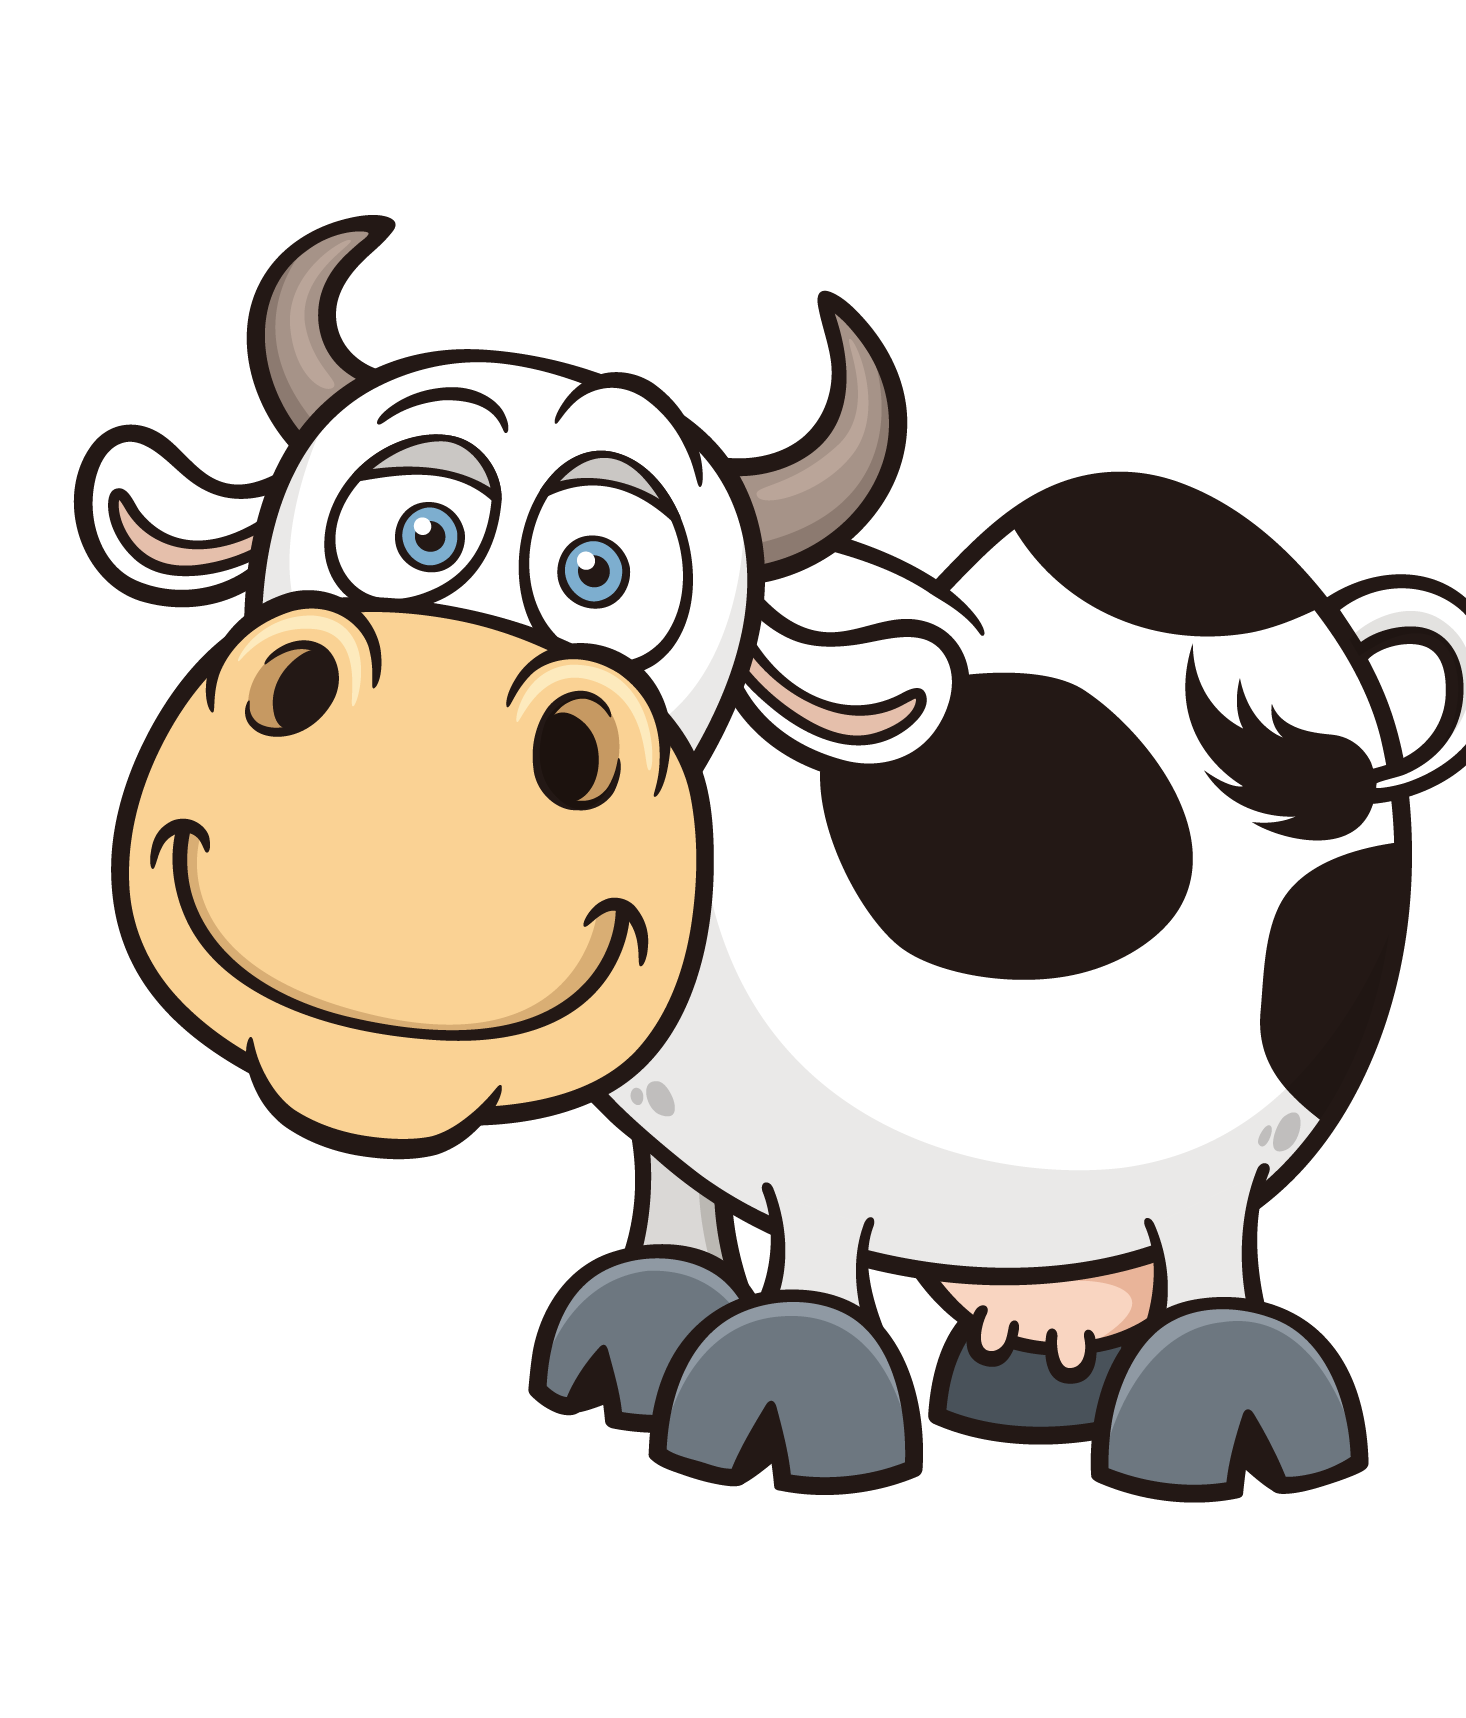 Cows clipart animal. Cattle cartoon royalty free